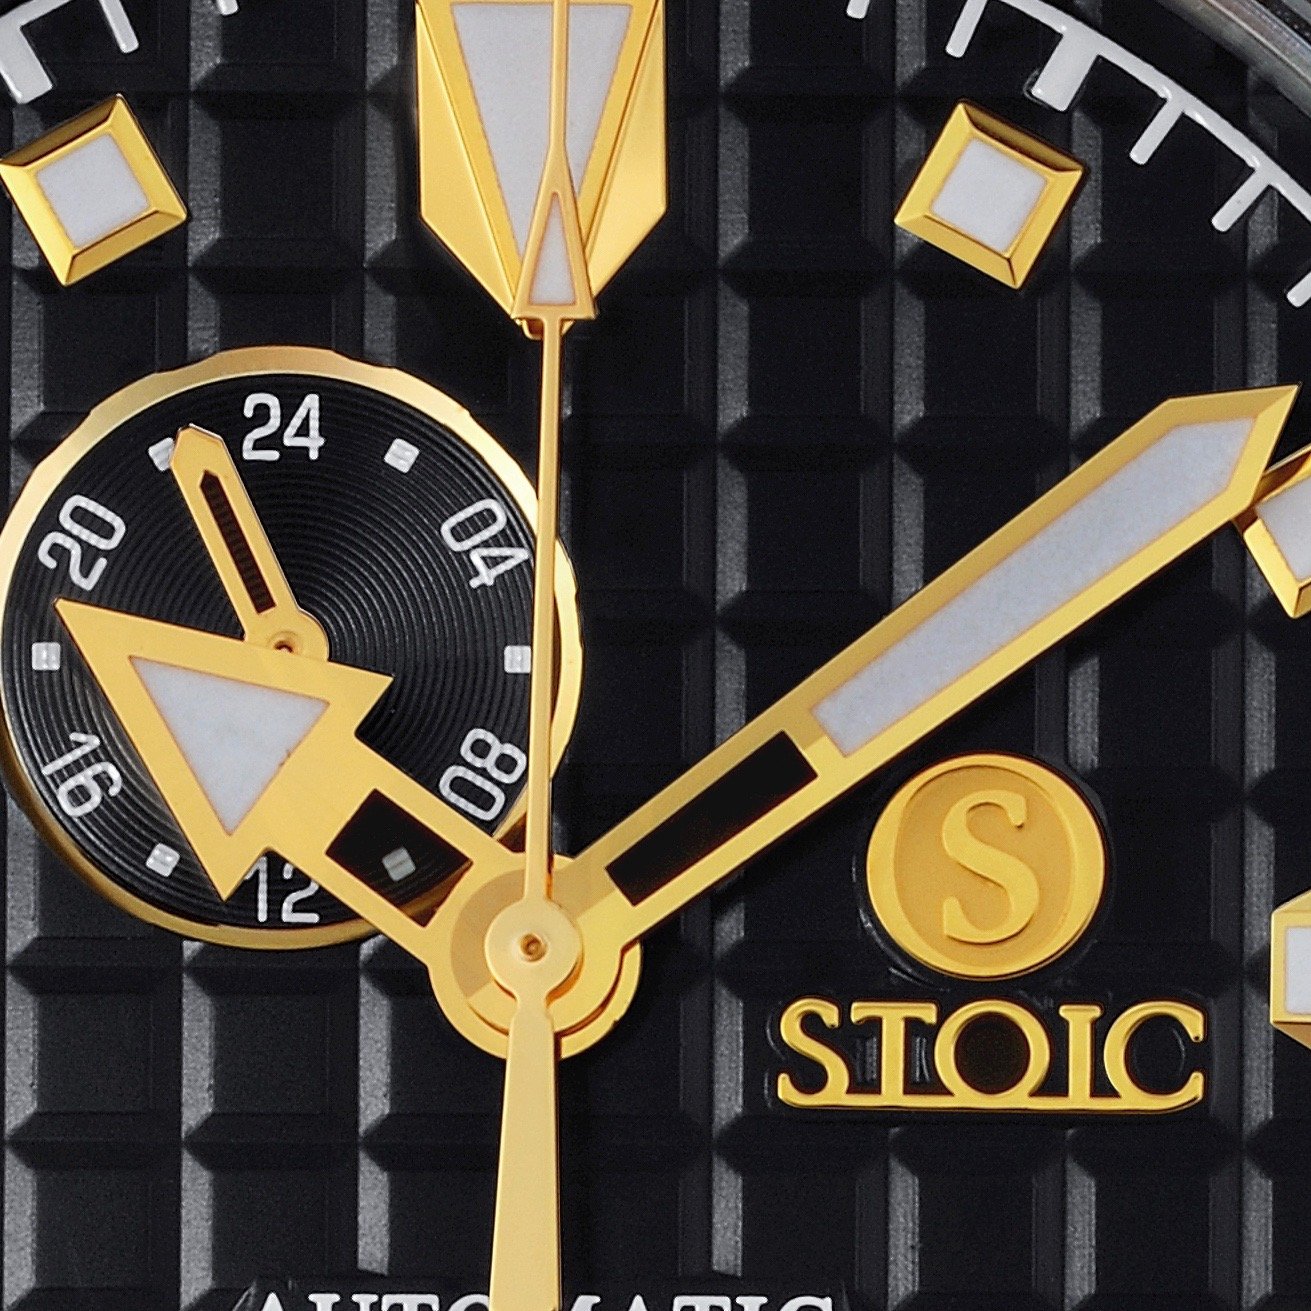 Stoic sports watch